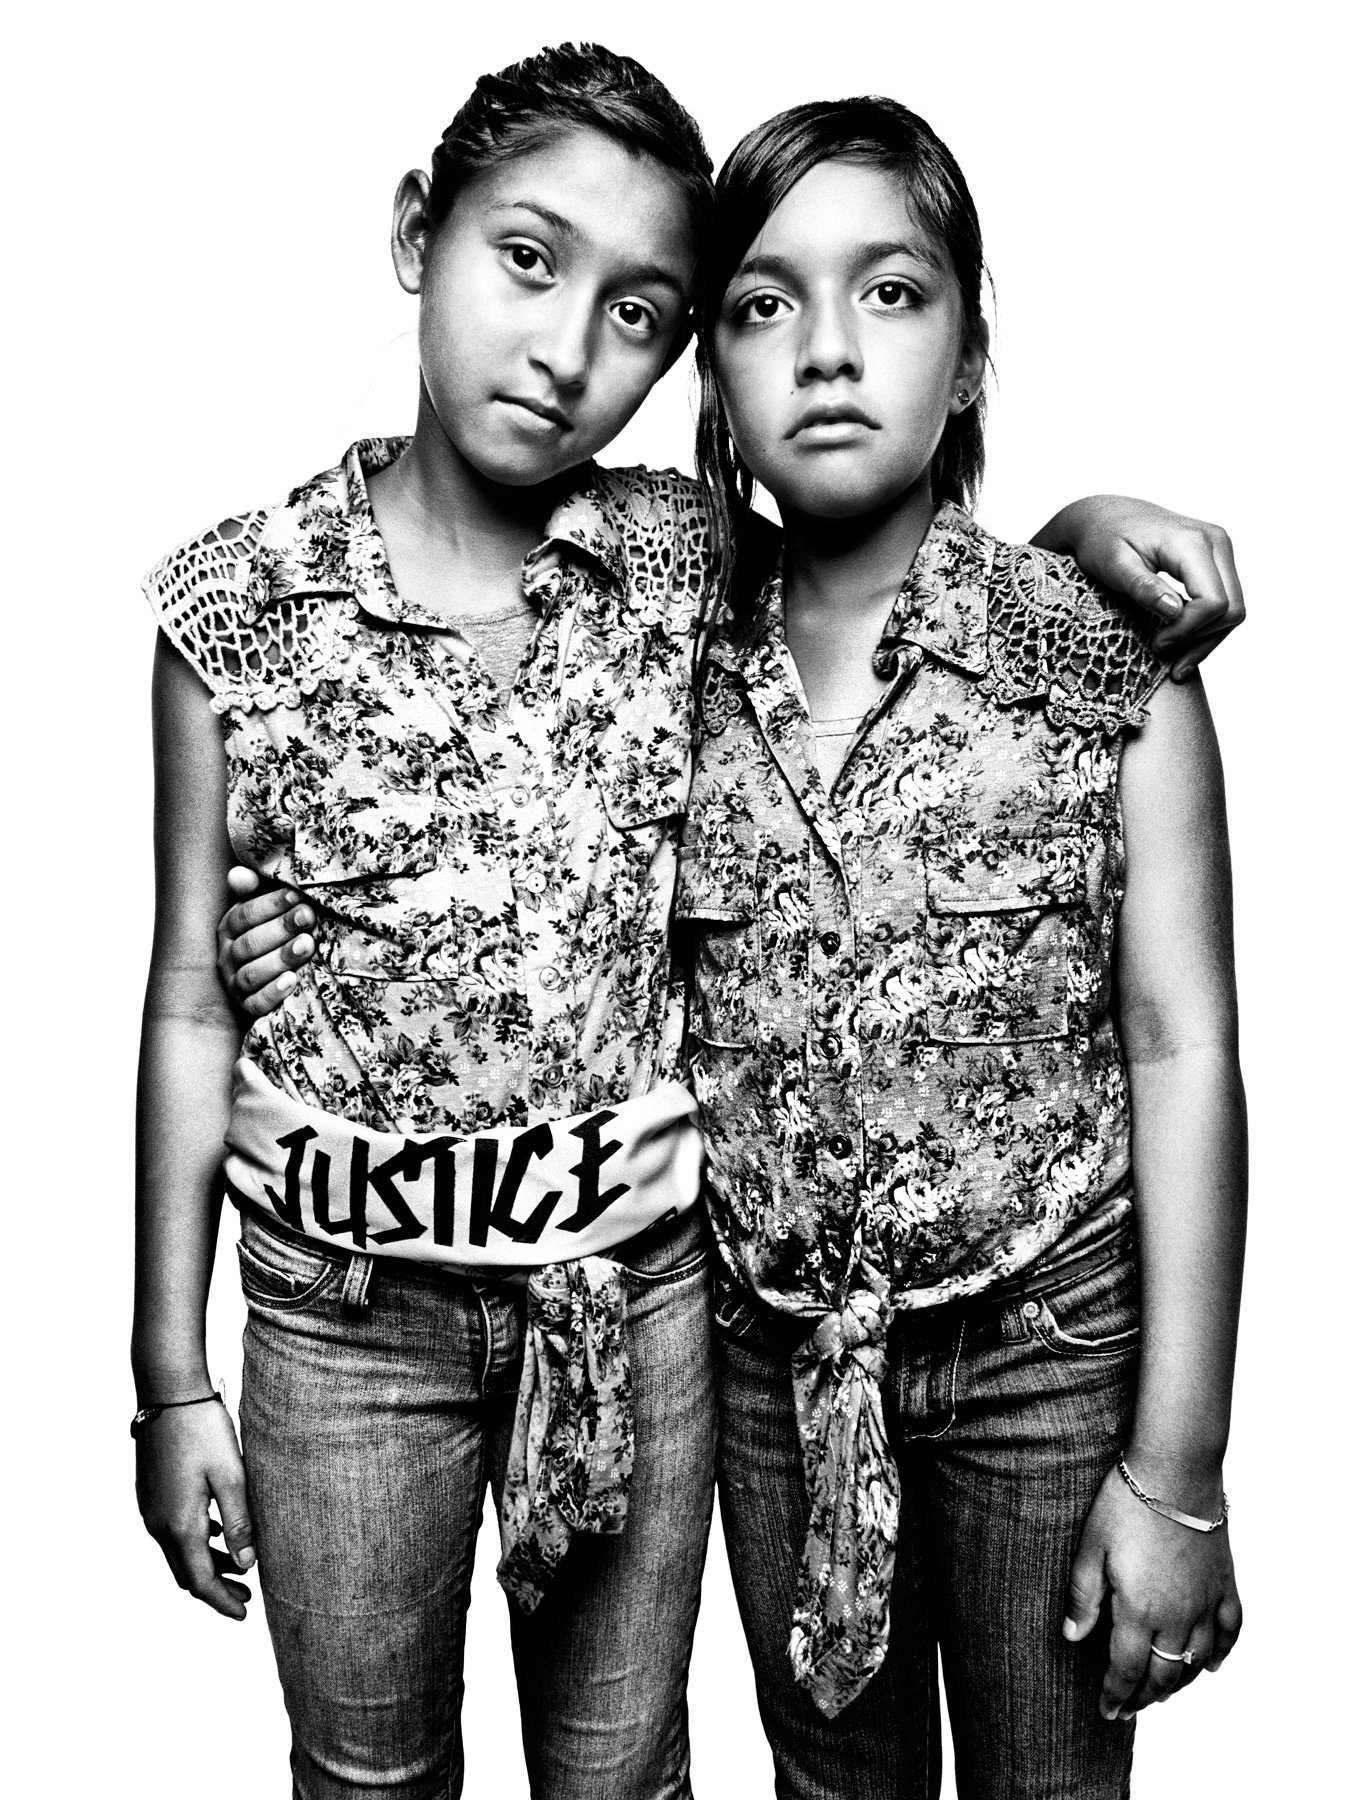 Jacqueline Rayos (R), and Mayra Lovatos, both 11, are cousins and US citizens. But Jacqueline's mother and Mayra's aunt, Guadalupe Garcia de Rayos, is undocumented. She was arrested in 2008 in a raid conducted by Sheriff Joe Arpaio of Maricopa County and eventually put into deportation proceedings. After a public campaign by the immigrant advocacy group Puente, Guadalupe was granted a one-year stay of removal. Jacqueline and Mayra were photographed after a protest organized by Puente Arizona in front of Immigration and Customs Enforcement headquarters in Phoenix, Arizona, on July 29, 2013, a few days after Guadalupe's stay was granted. On February 8, 2017 -- during her annual appointment with immigration officials -- agents arrested Guadalupe and began procedures to send her back to Mexico, a country she has not seen since she left 21 years ago.